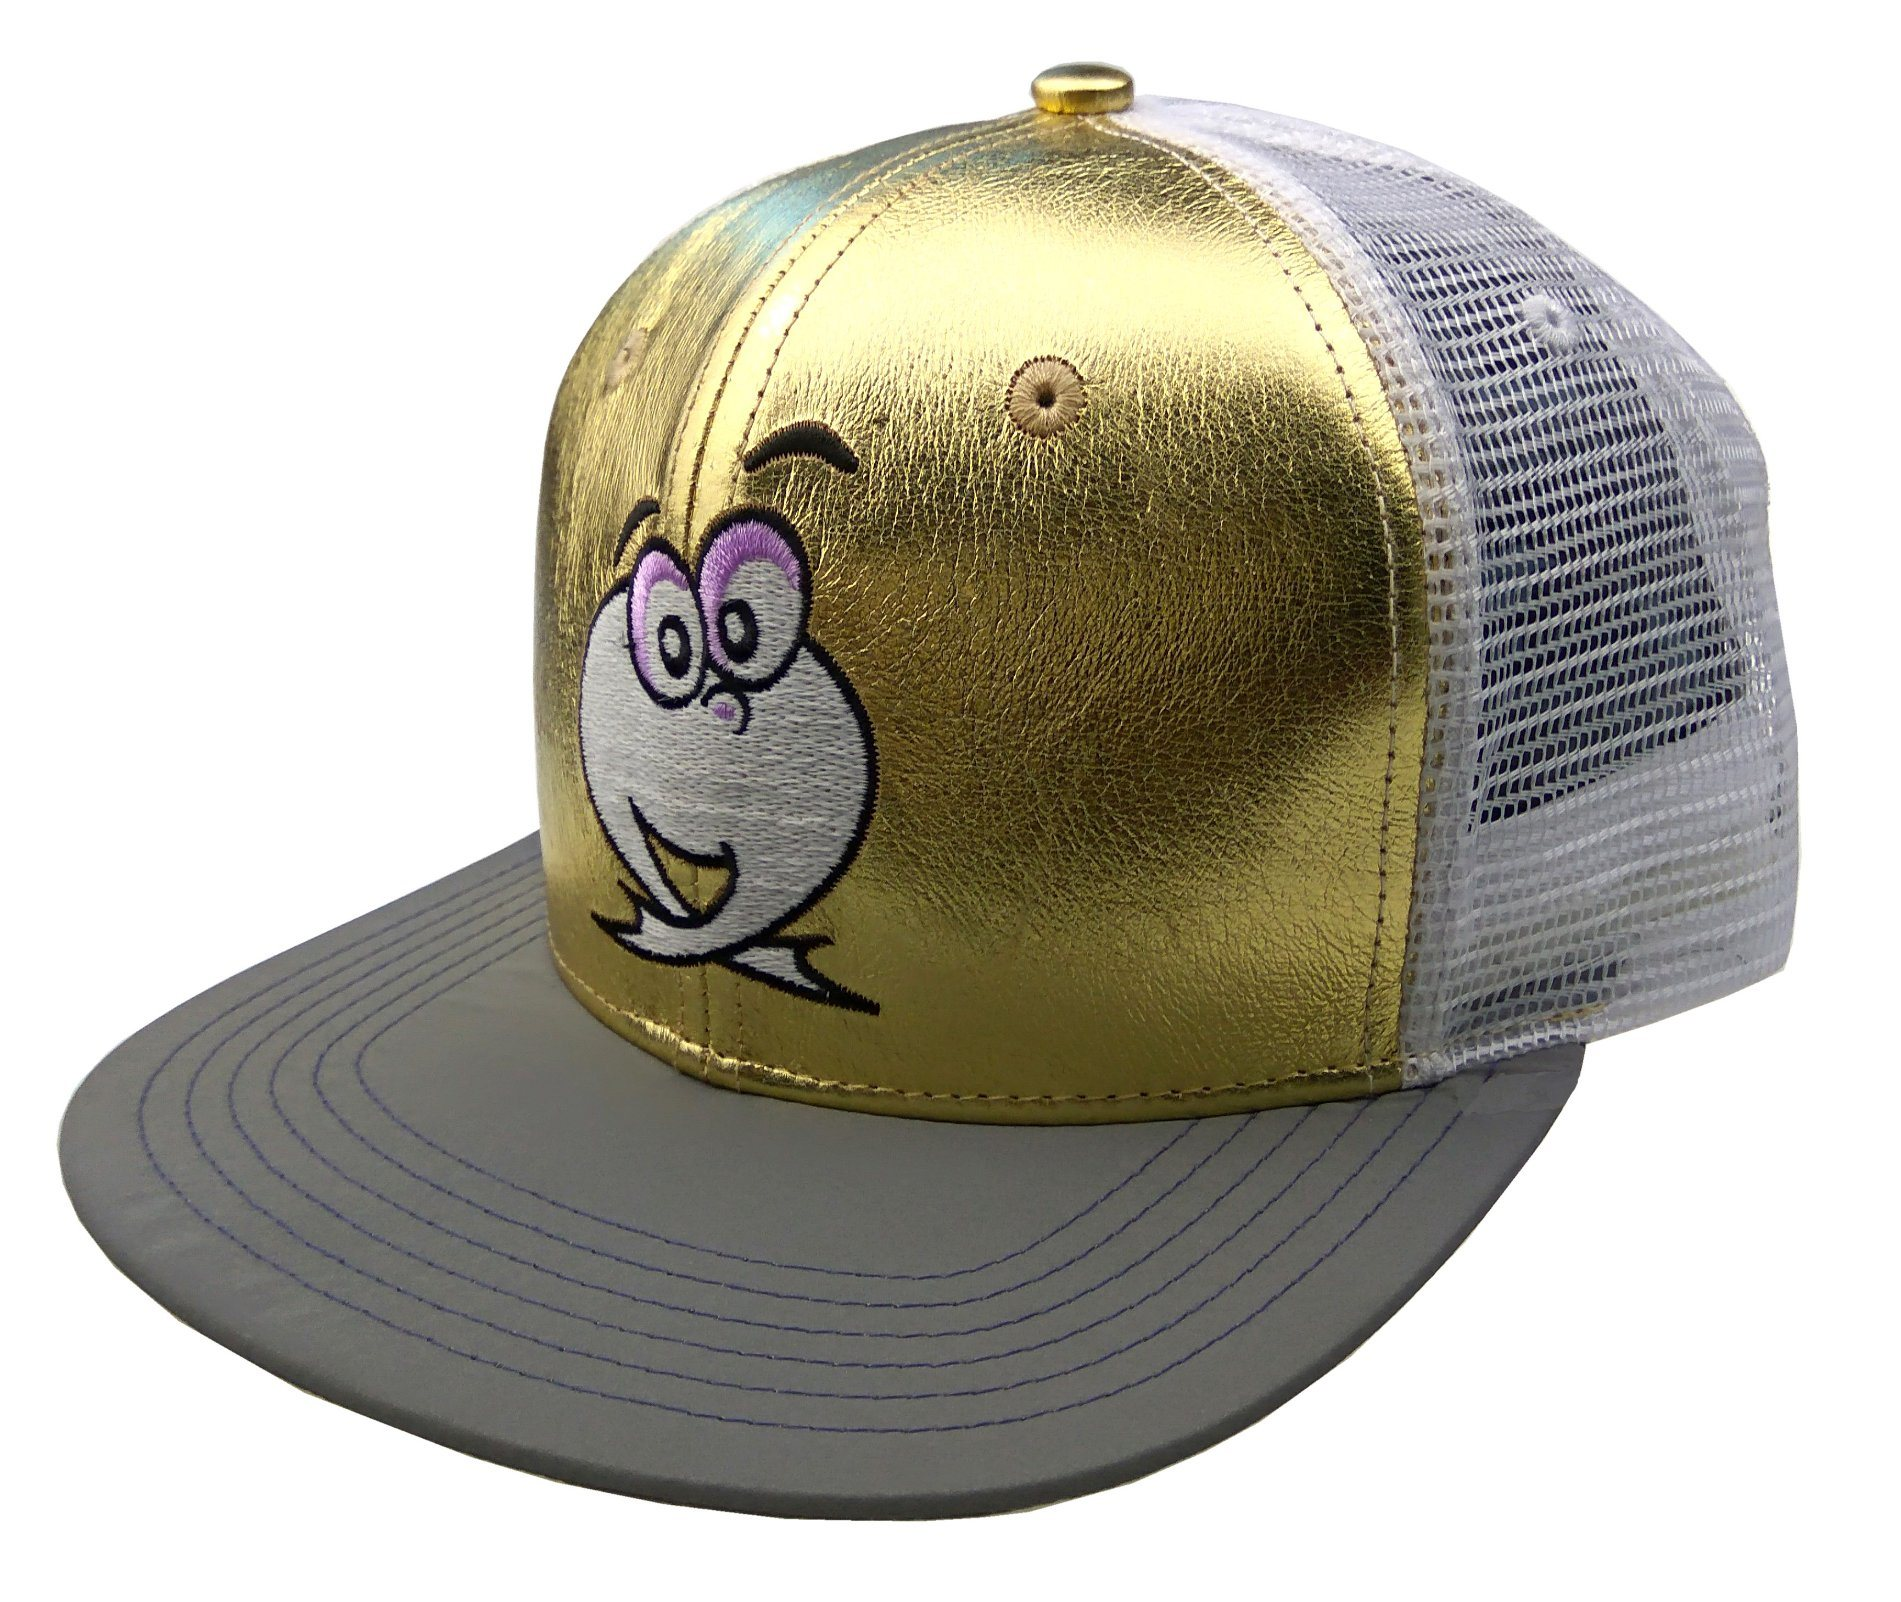 Gold/White 6 Panels PU/Mesh Flat Brim Cap Trucker Cap with Embroidery